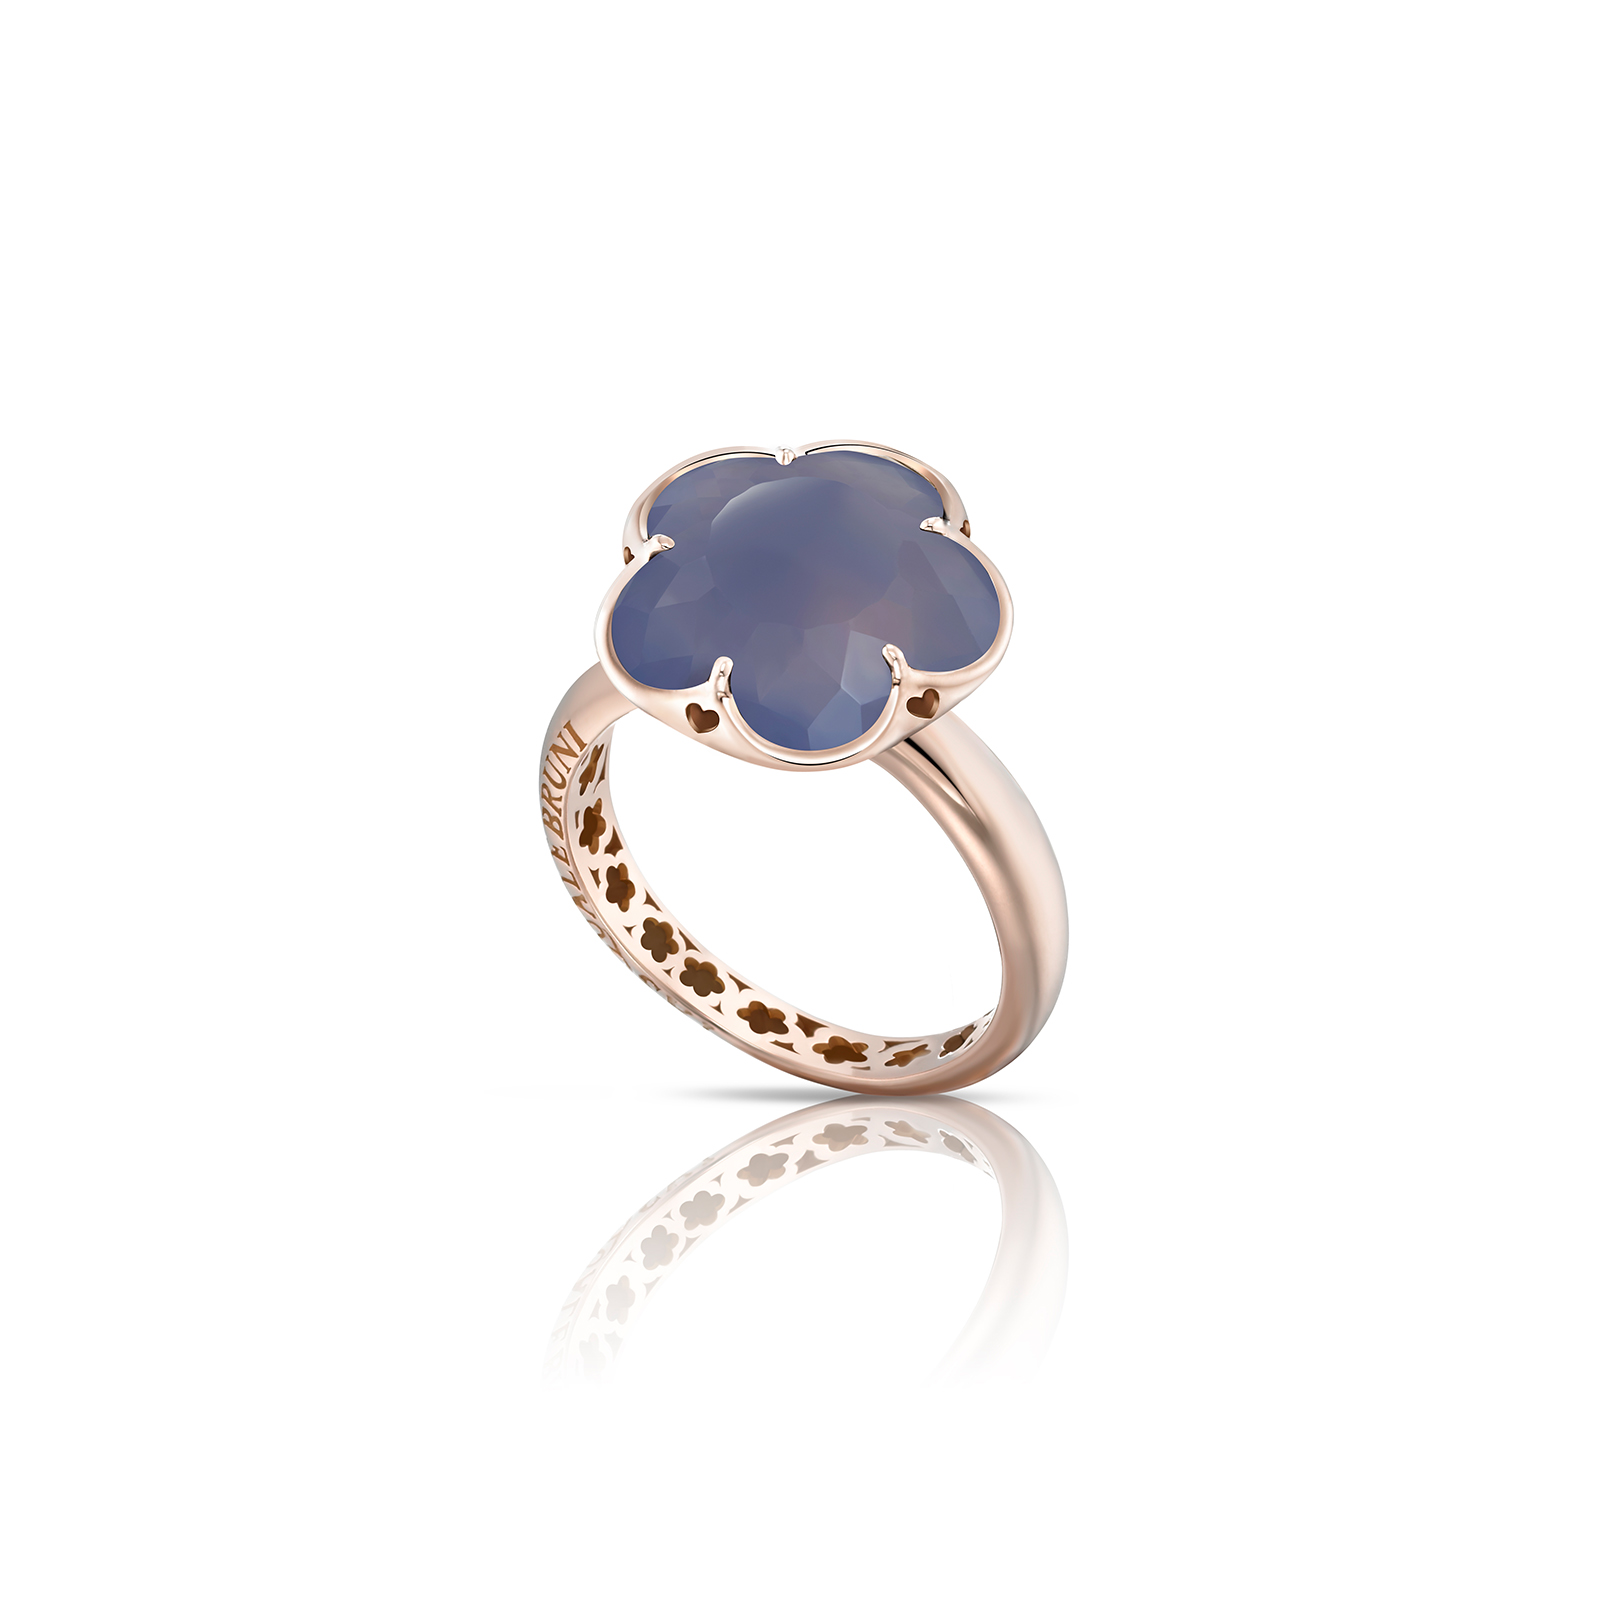 BON TON RING WITH DEEP BLUE CHALCEDONY 11mm